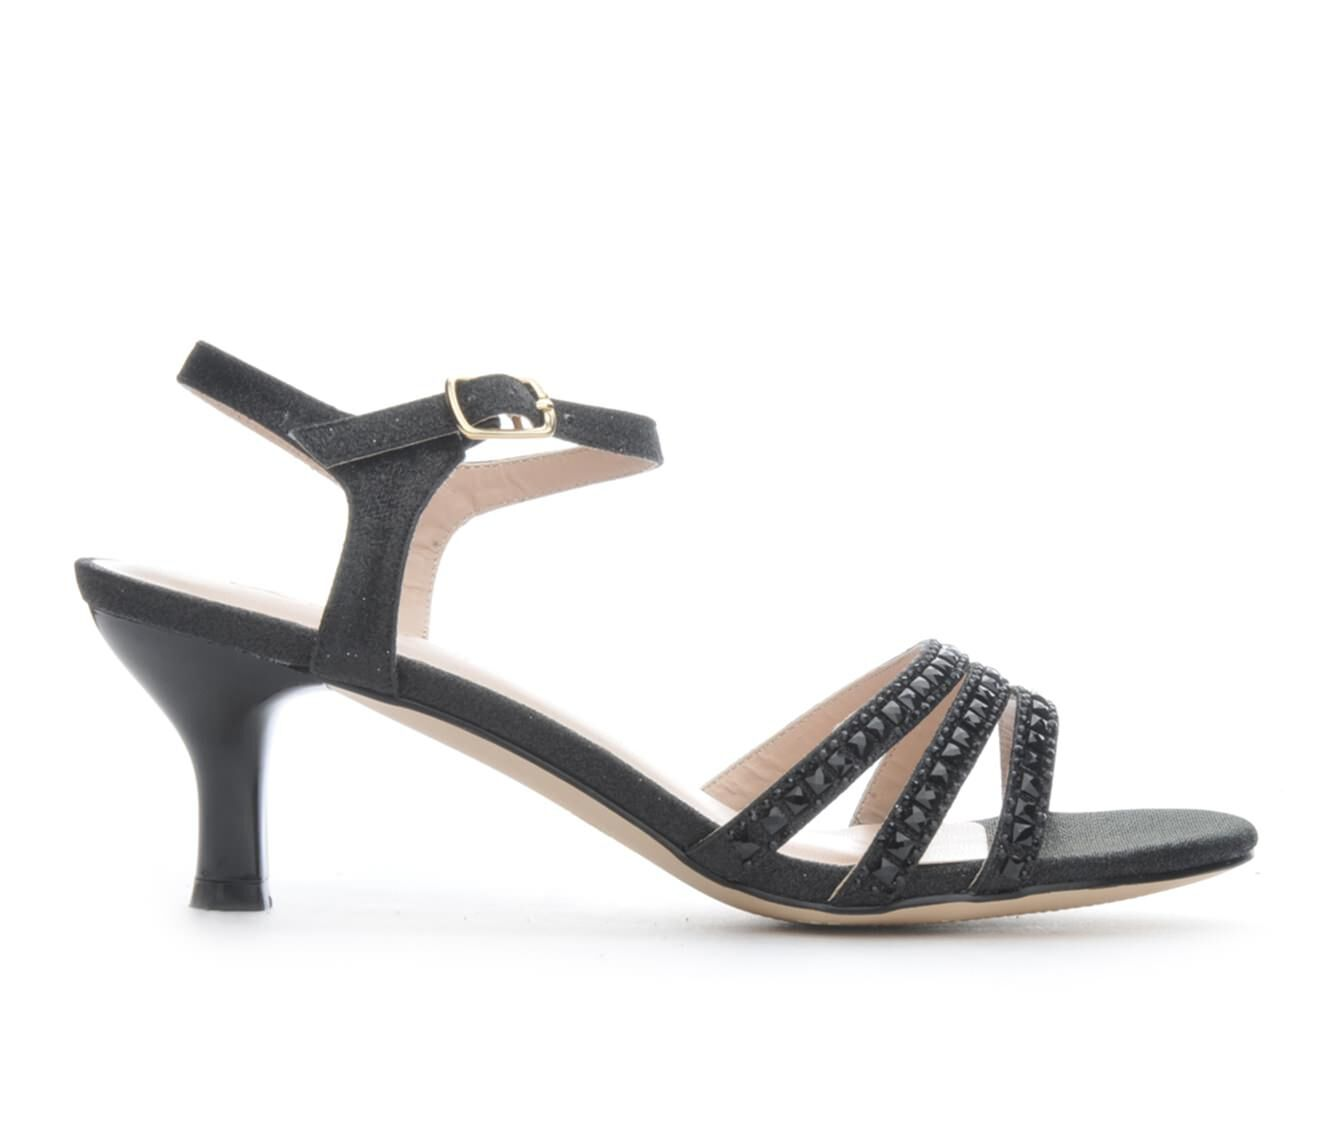 Women's LLorraine Berkly Dress Sandals sast for cheap clearance for cheap discount 2014 new buy cheap prices oocZ0uZn